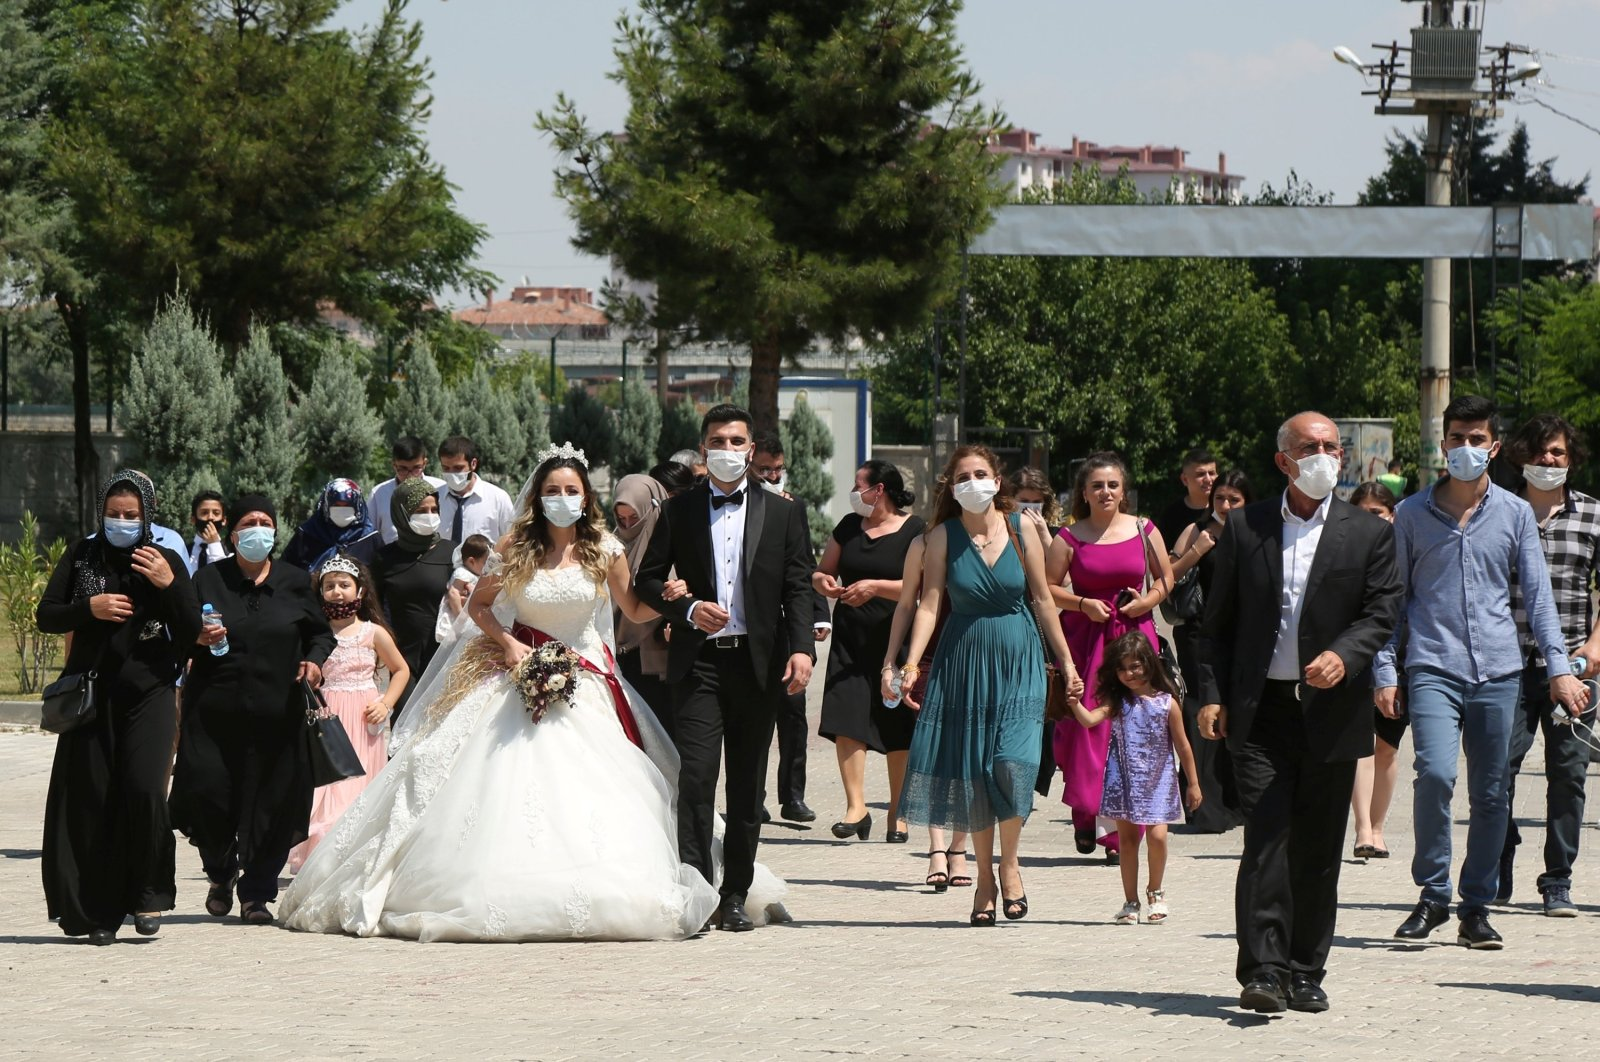 People with face masks walk with a bride and groom following a wedding ceremony in Diyarbakır, Turkey, July 2, 2020. (Reuters Photo)